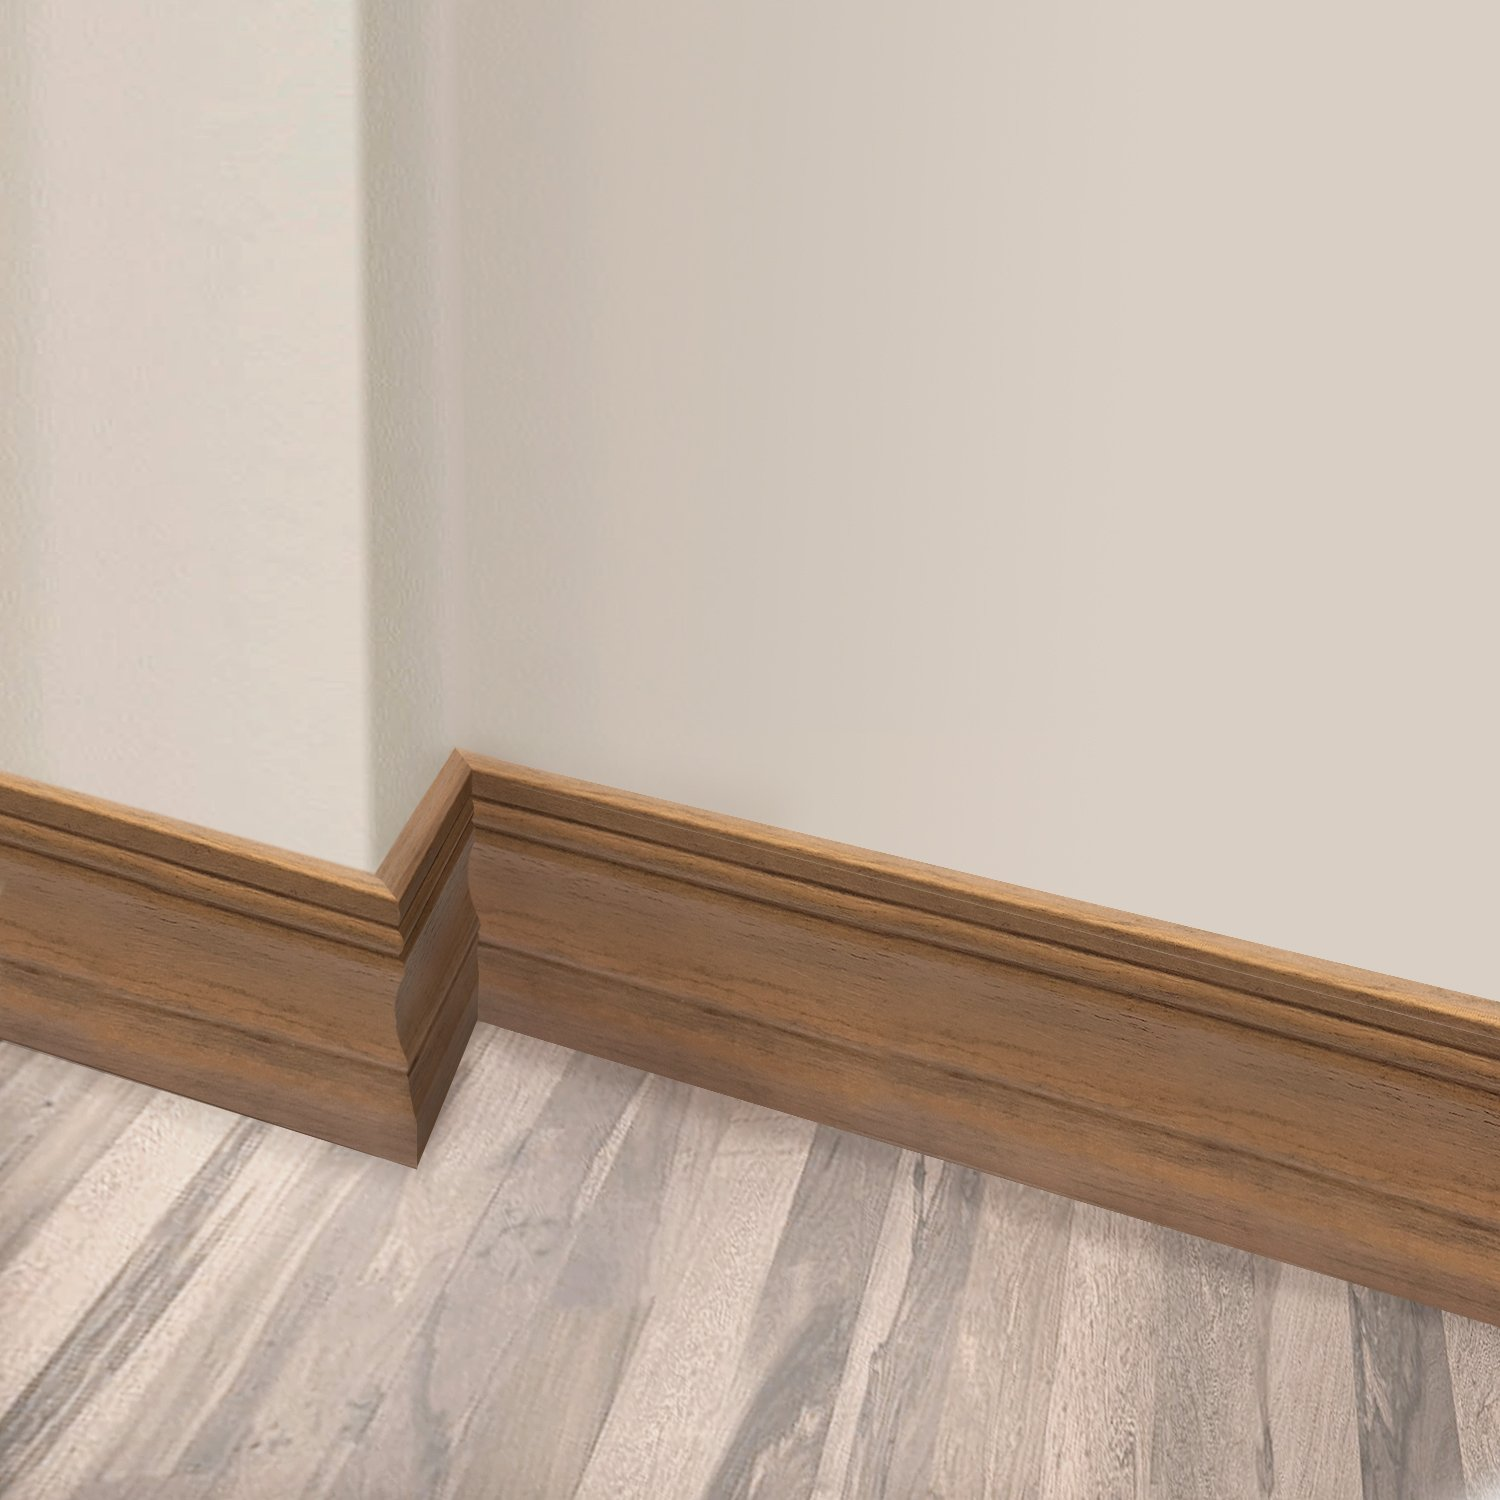 style modern dark your the country baseboards floor pin home baseboard selecting moldings perfect and craftsman trim styles for molding